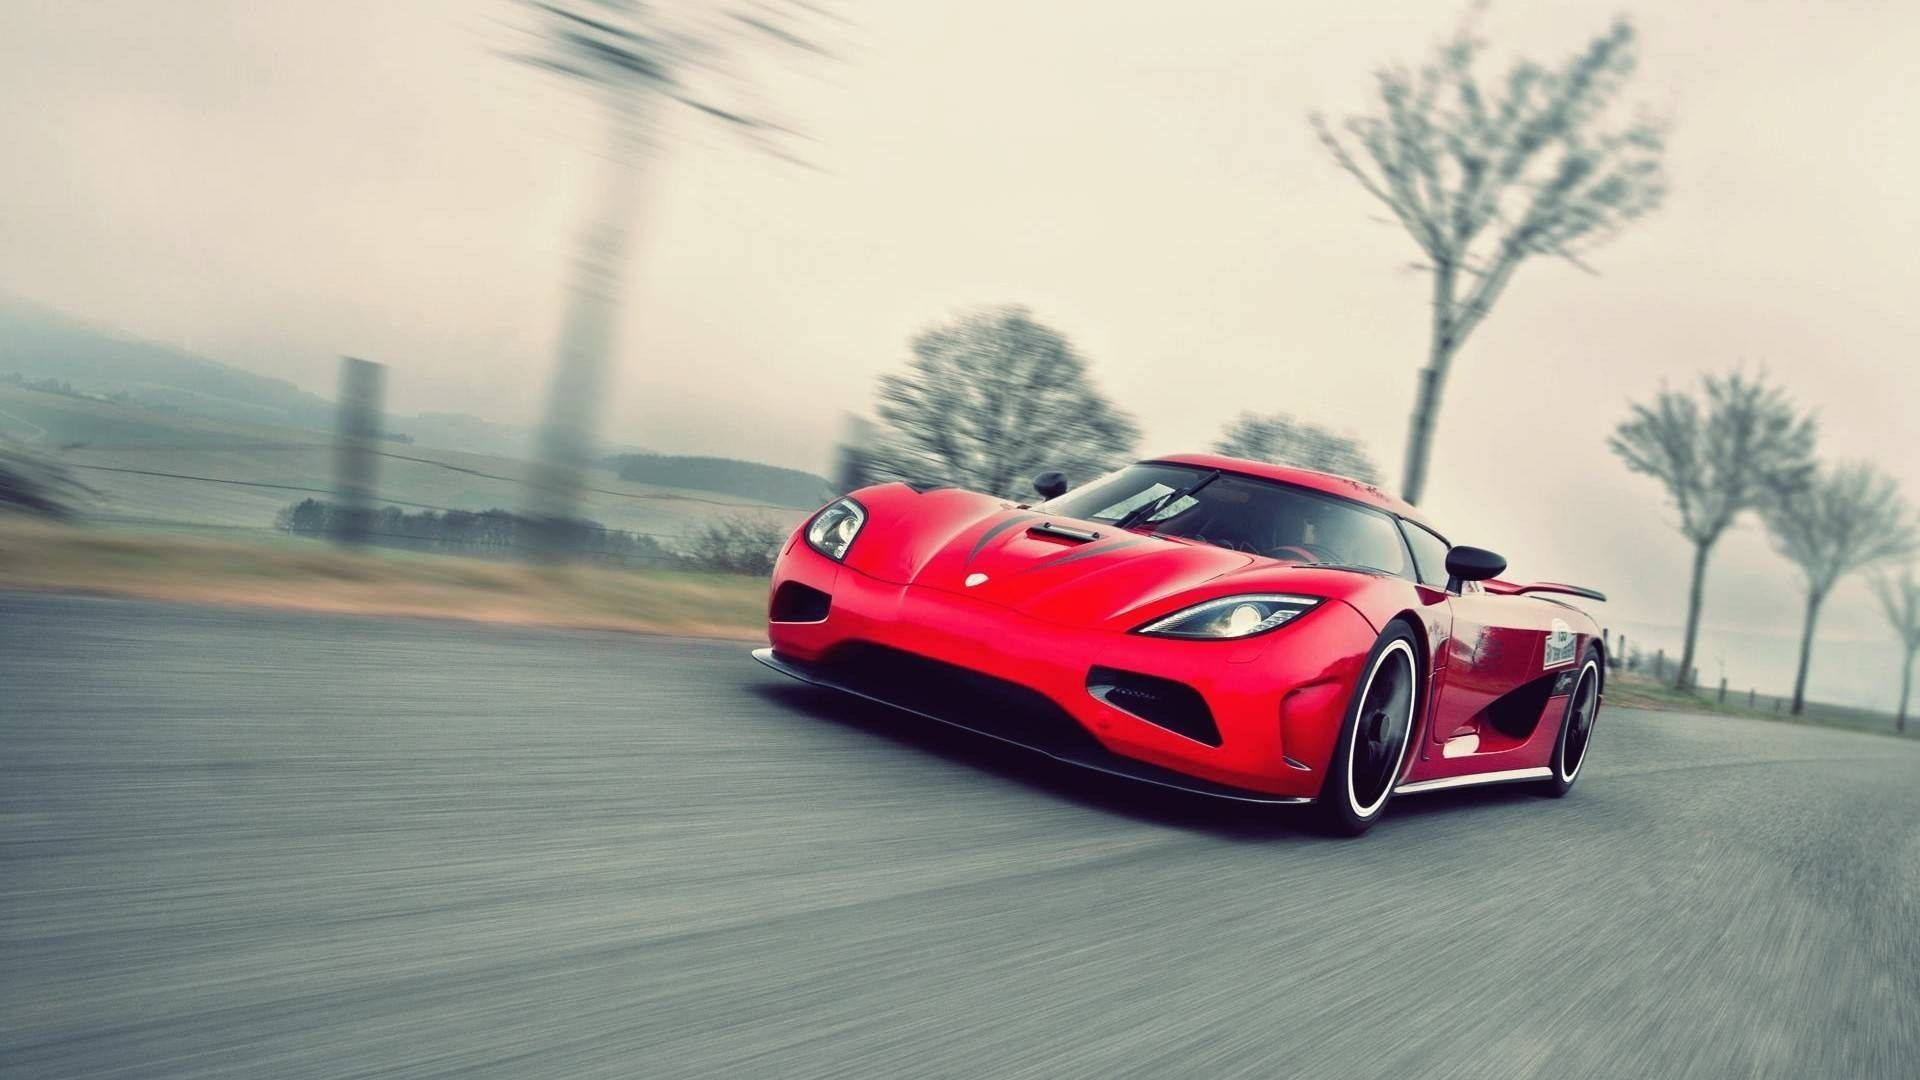 Koenigsegg Agera R Hd Wallpapers Koenigsegg Car Wallpapers Car